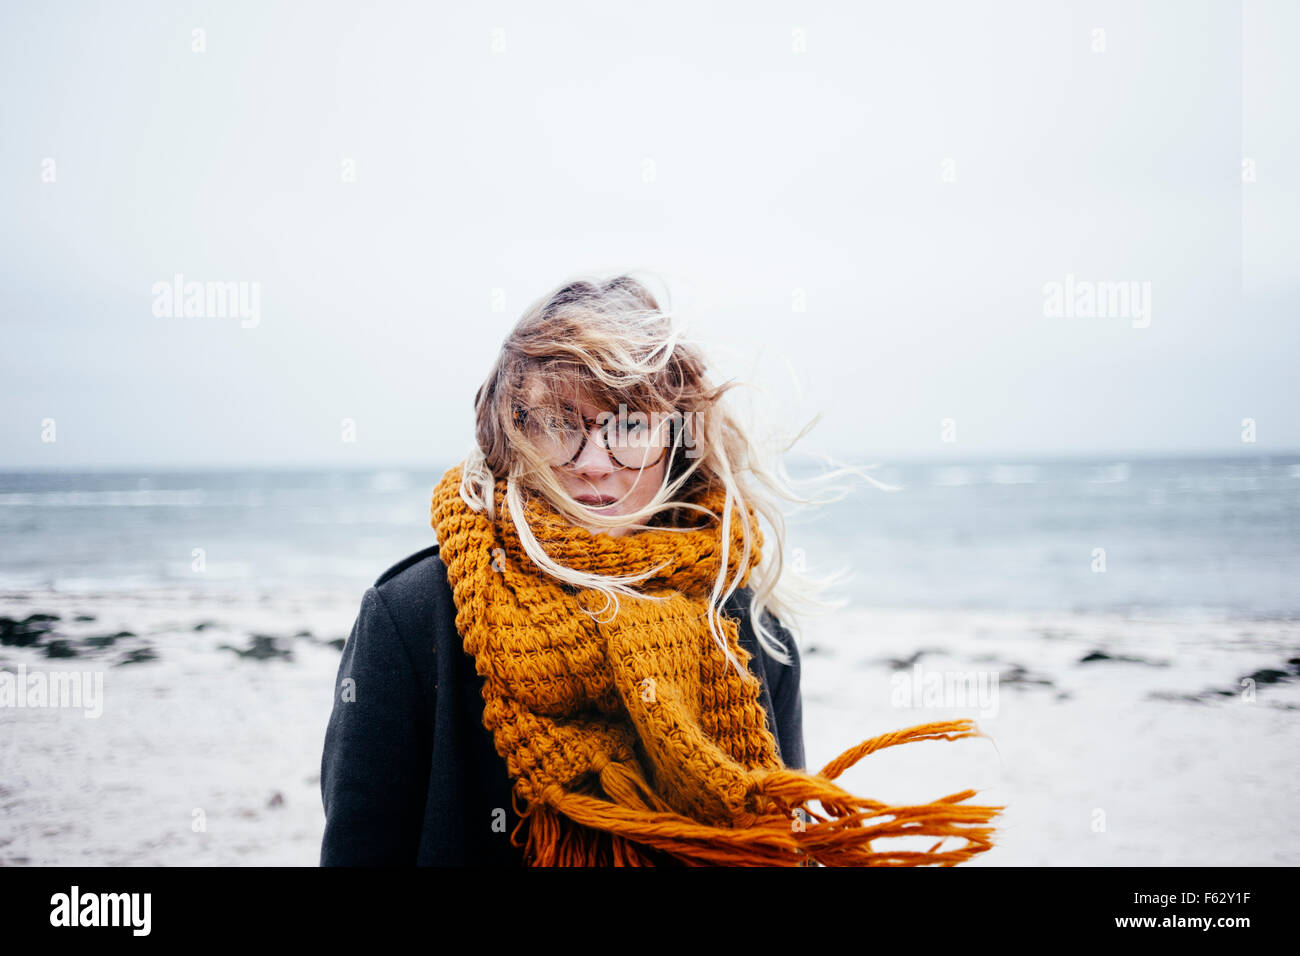 Portrait of young woman with tousled hair at beach Stock Photo